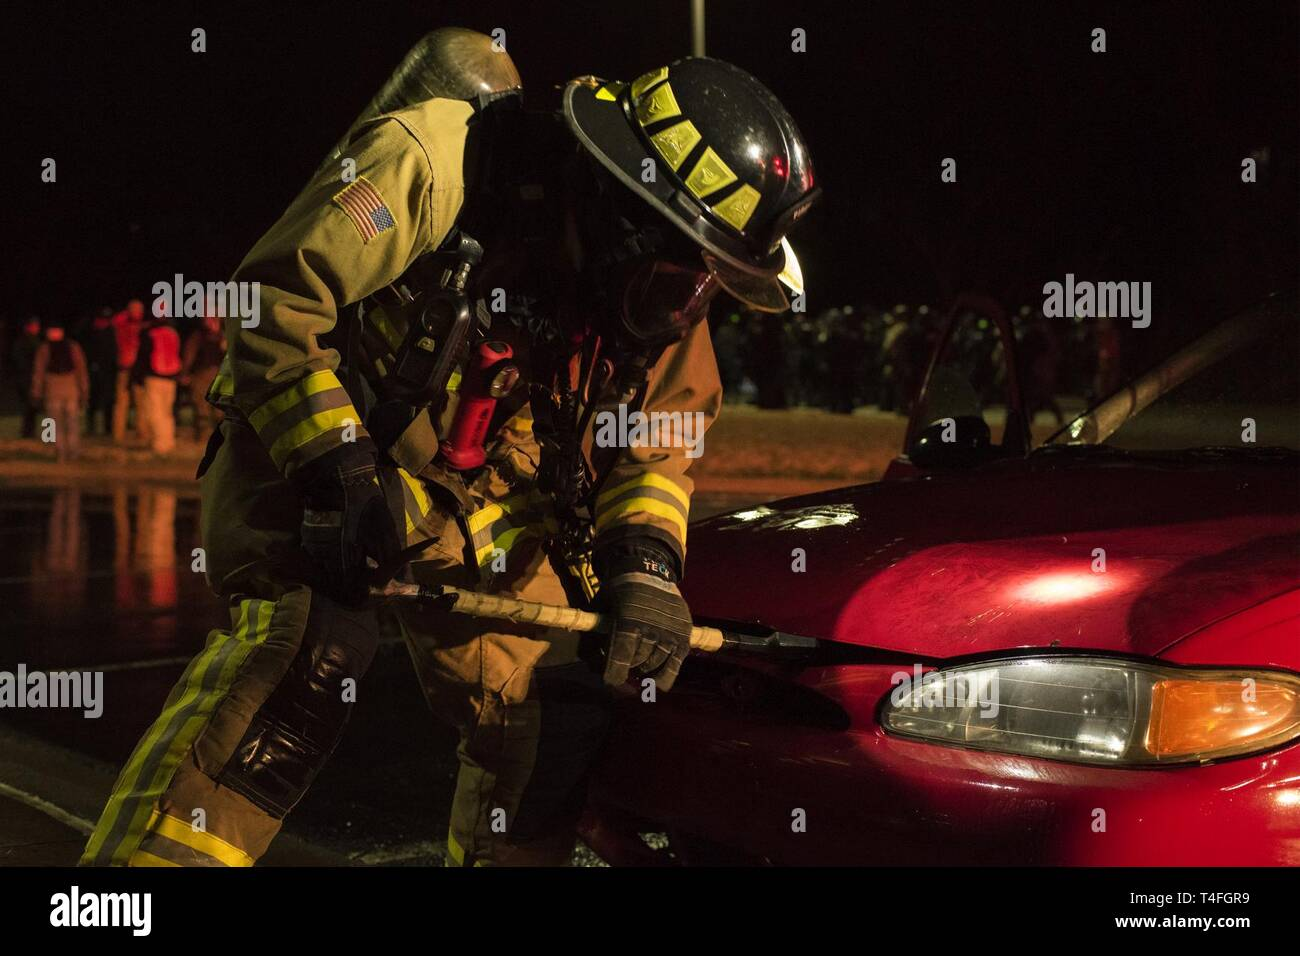 A firefighter assigned to Little Rock Air Force Base, Arkansas, practices dousing a car fire during Operation Phalax held March 30-31, 2019.  The operation is a joint exercise hosted by the Arkansas National Guard for civil and military organizations to train their members in tactics and techniques used in responding to a civil disturbance. - Stock Image